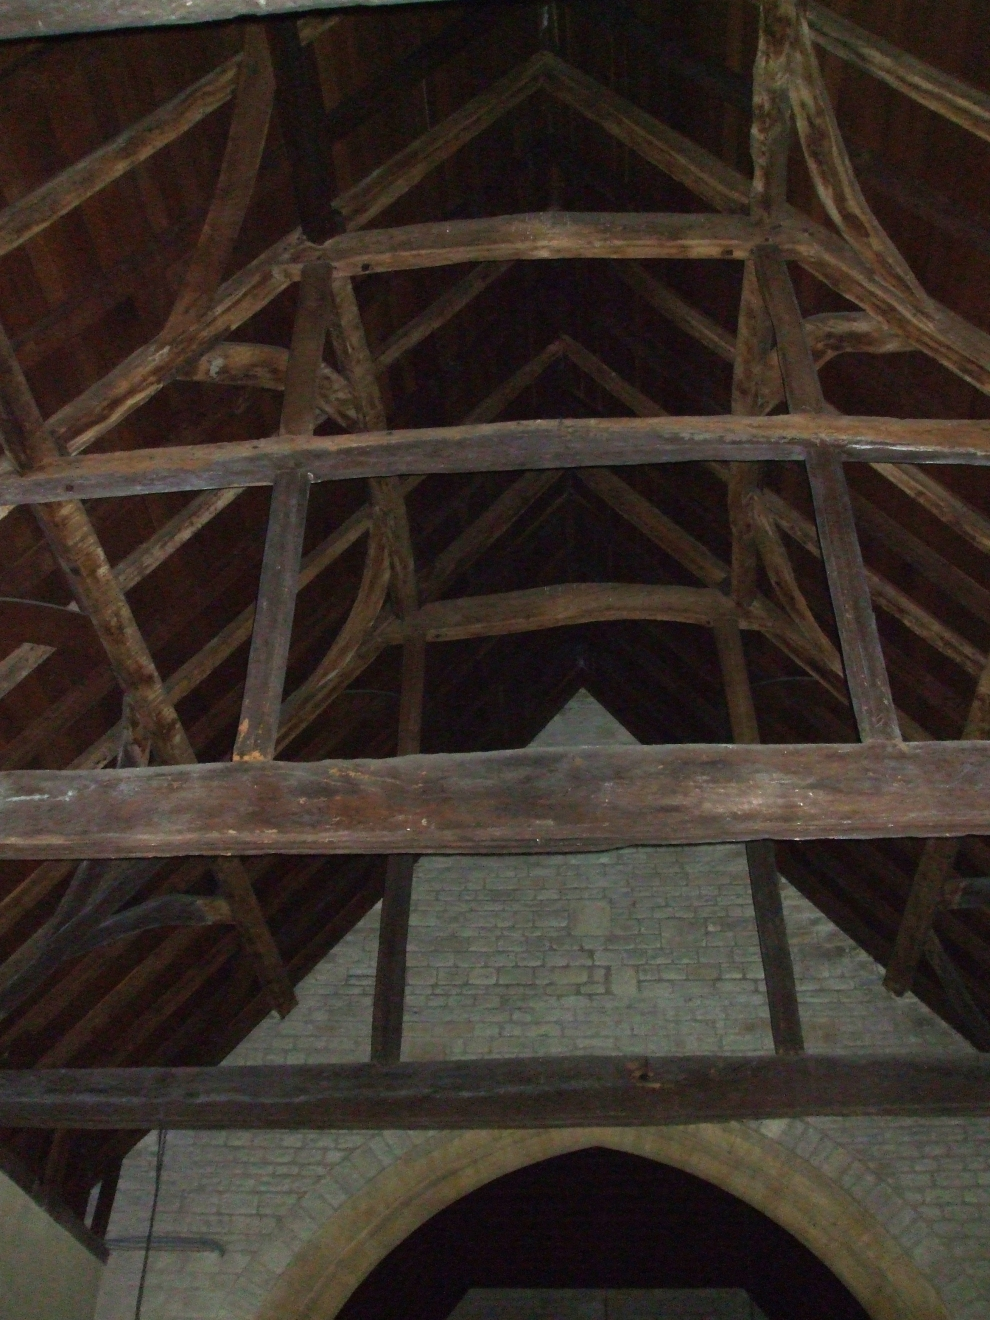 Roof timbers in Cuxham church